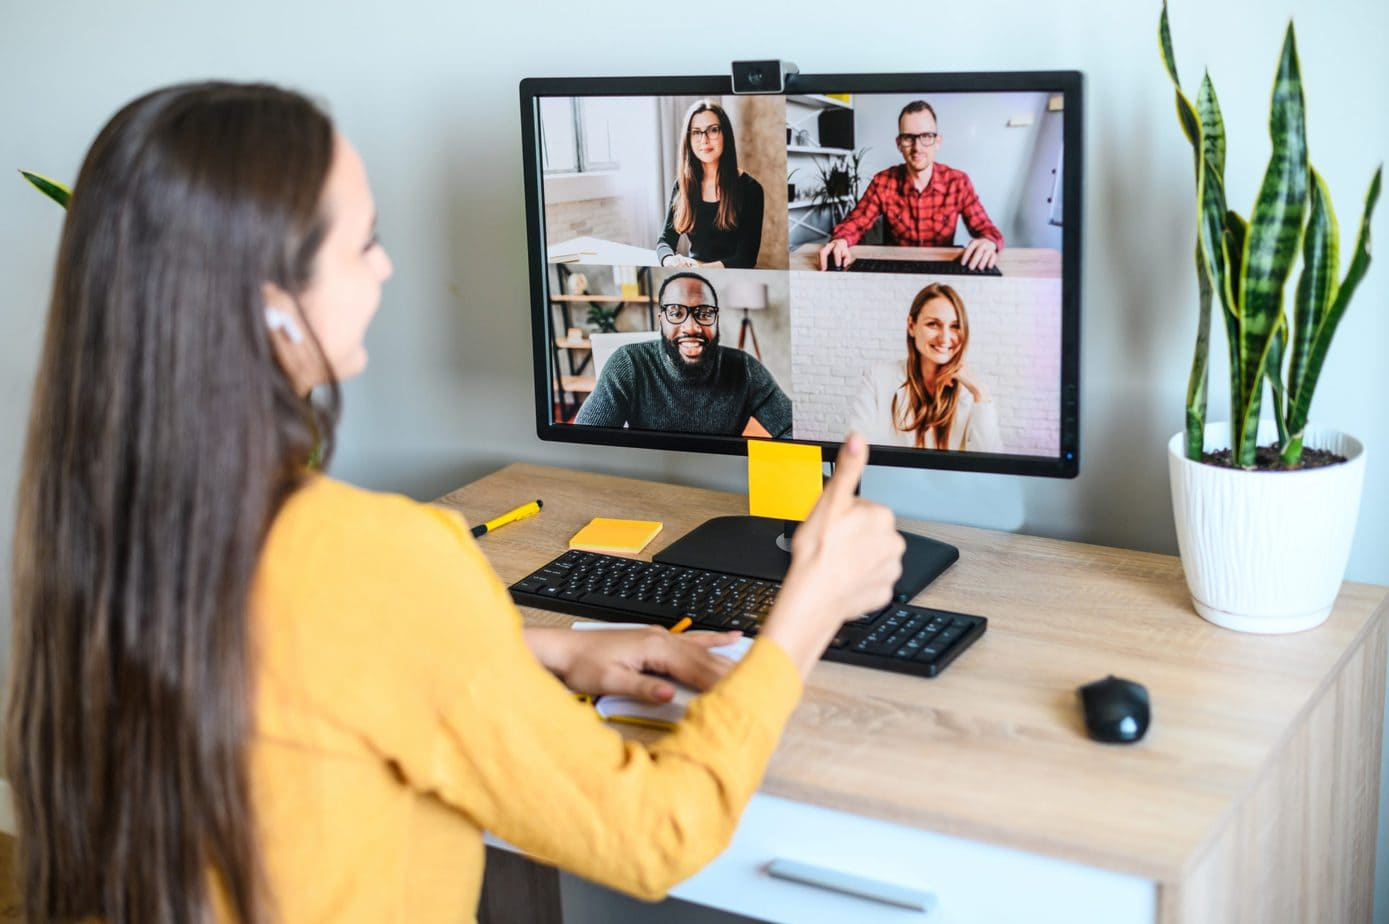 Video call young woman talks via video on PC